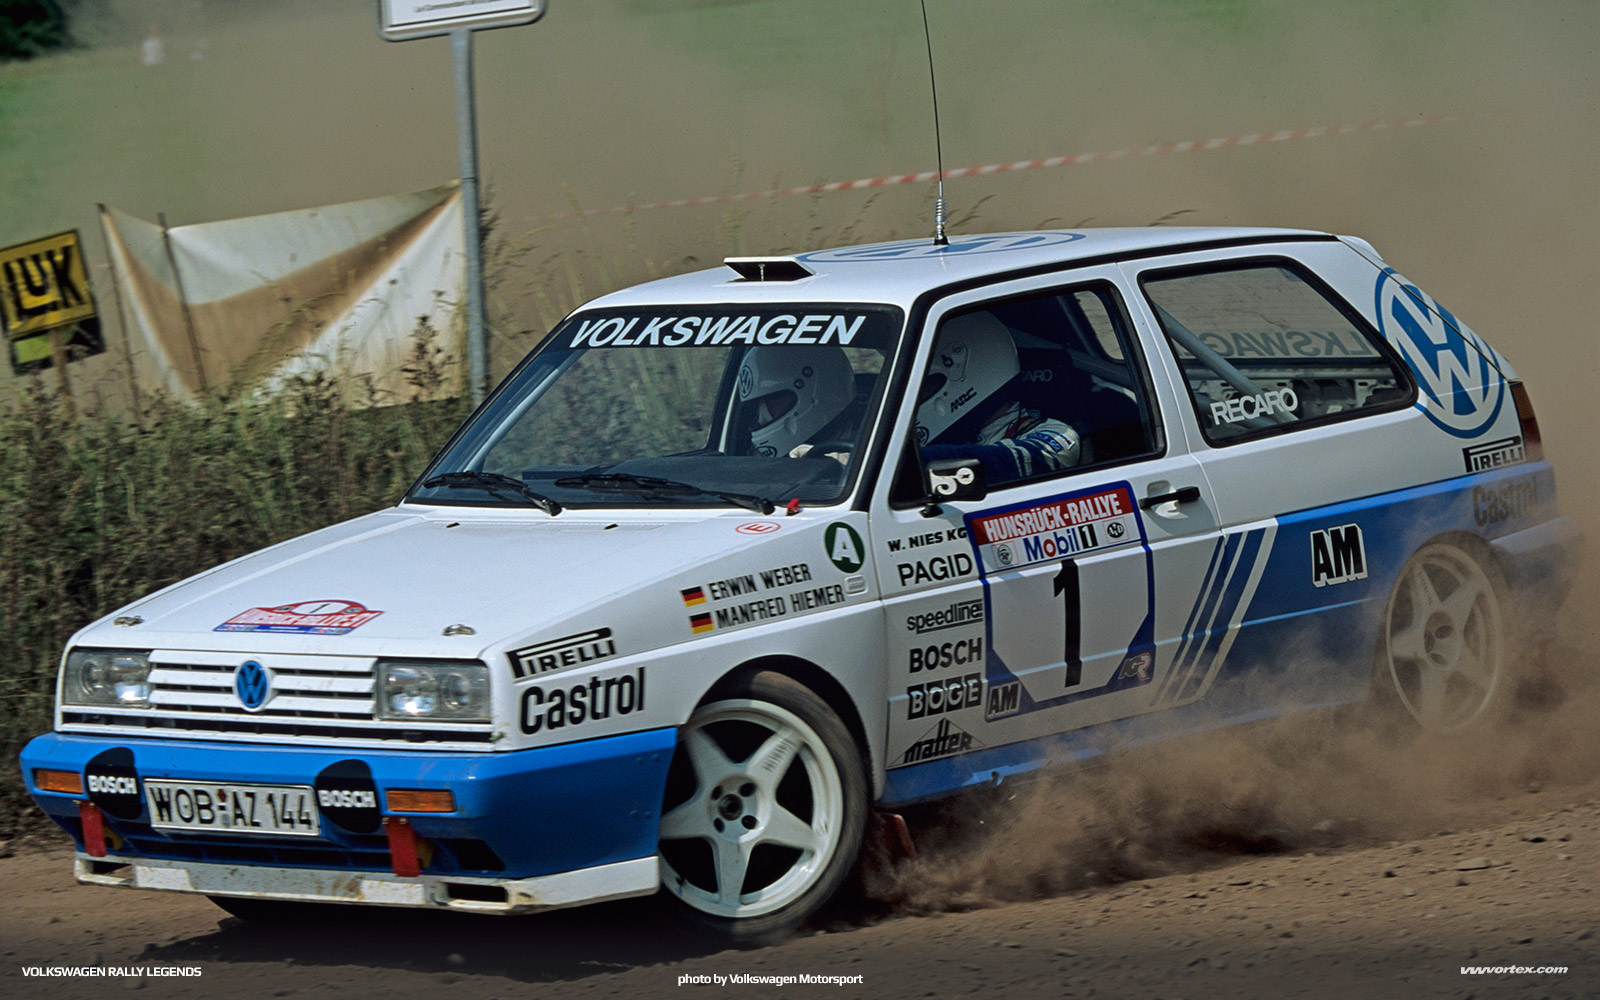 volkswagen-rally-legends-369